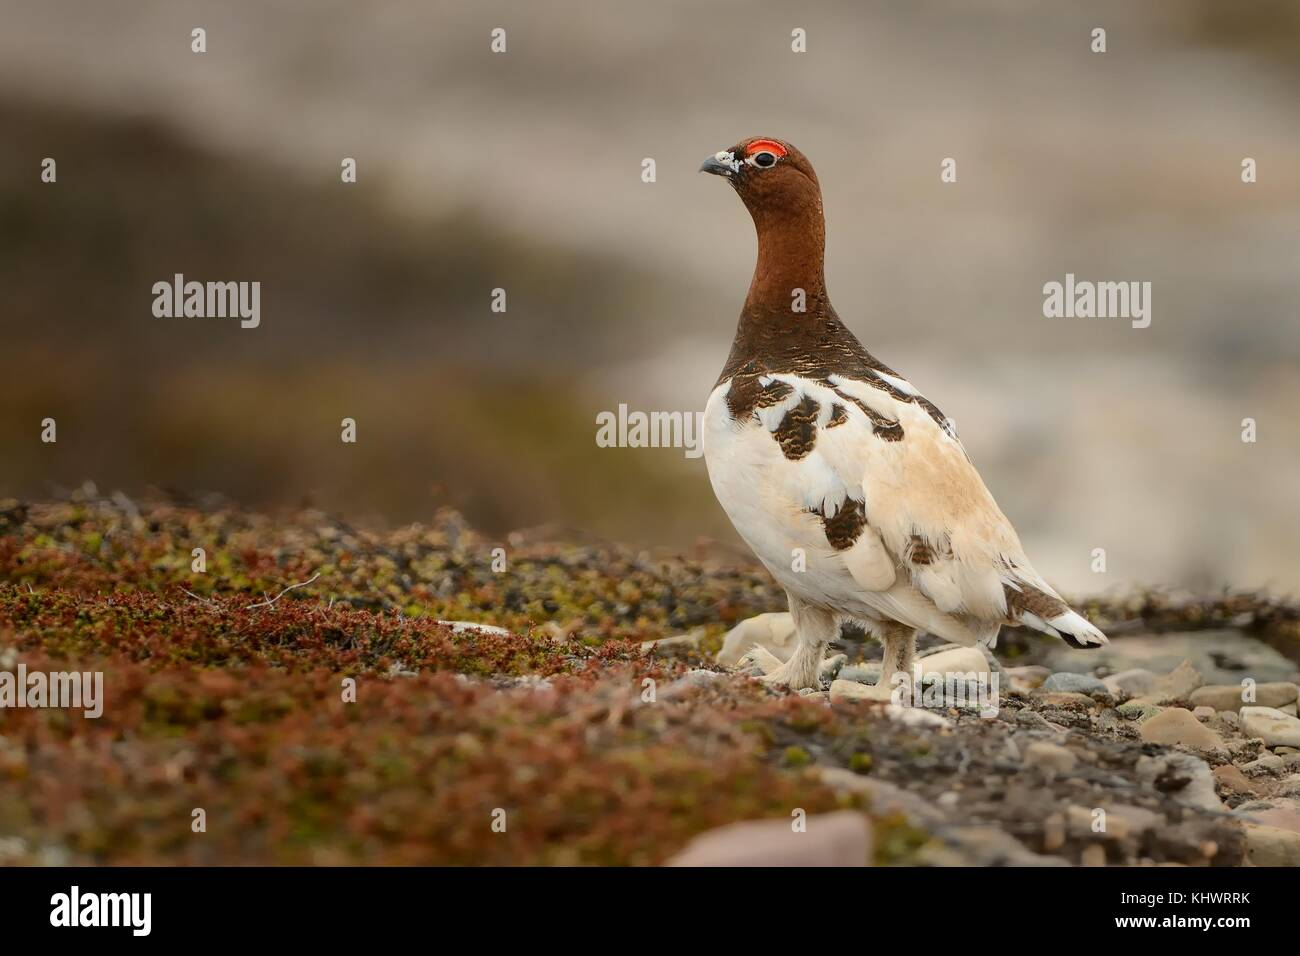 Willow Ptarmigan in the norwegian tundra. - Stock Image